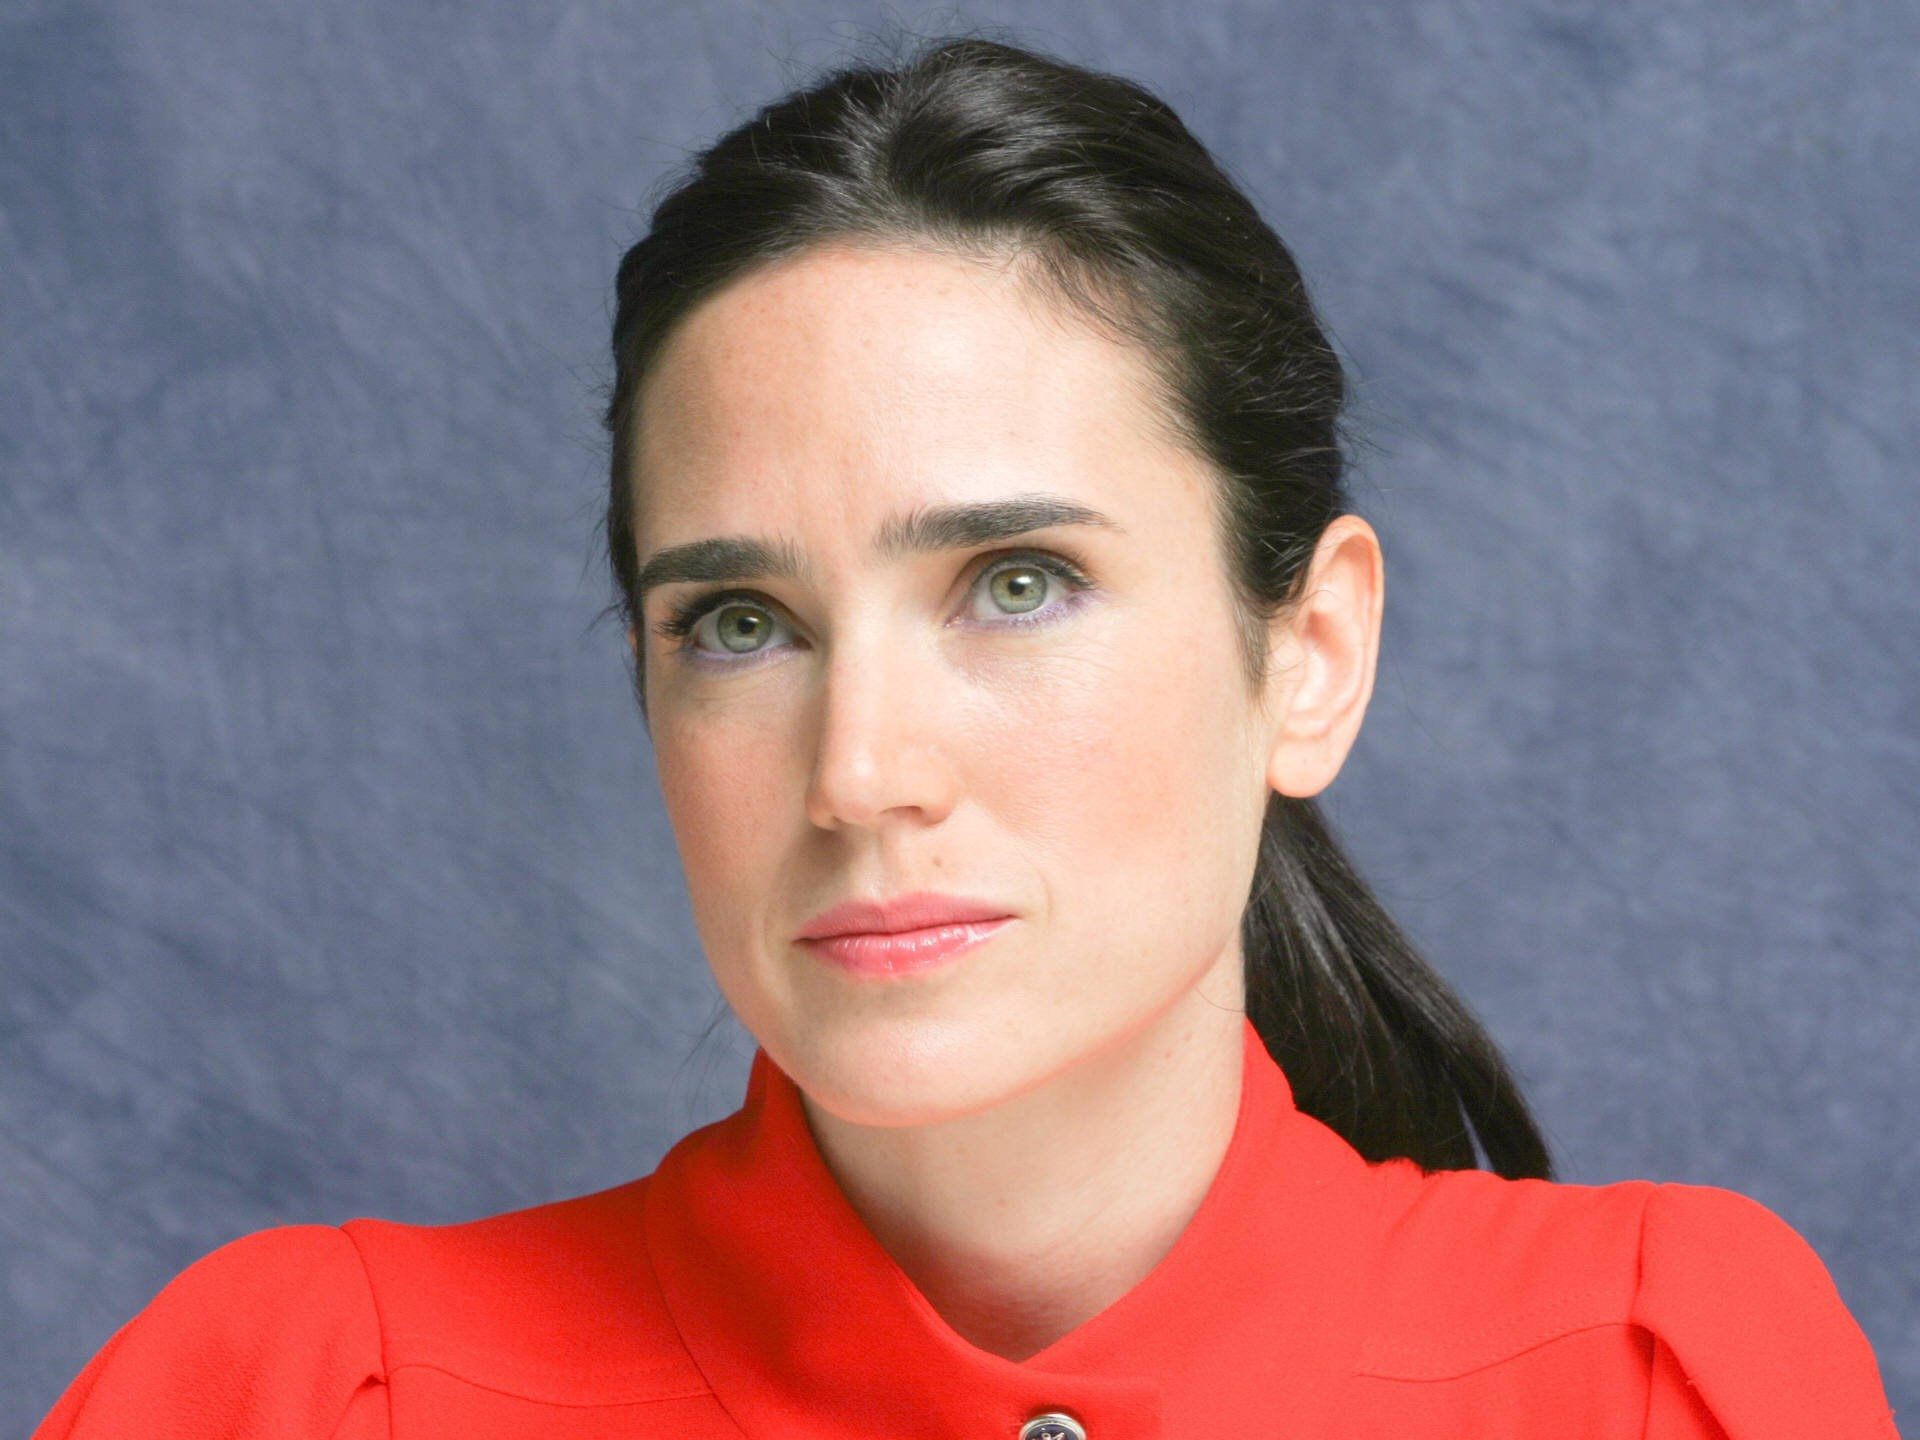 Jennifer Connelly High Quality Wallpapers  Jennifer Connelly High Quality Wallpapers